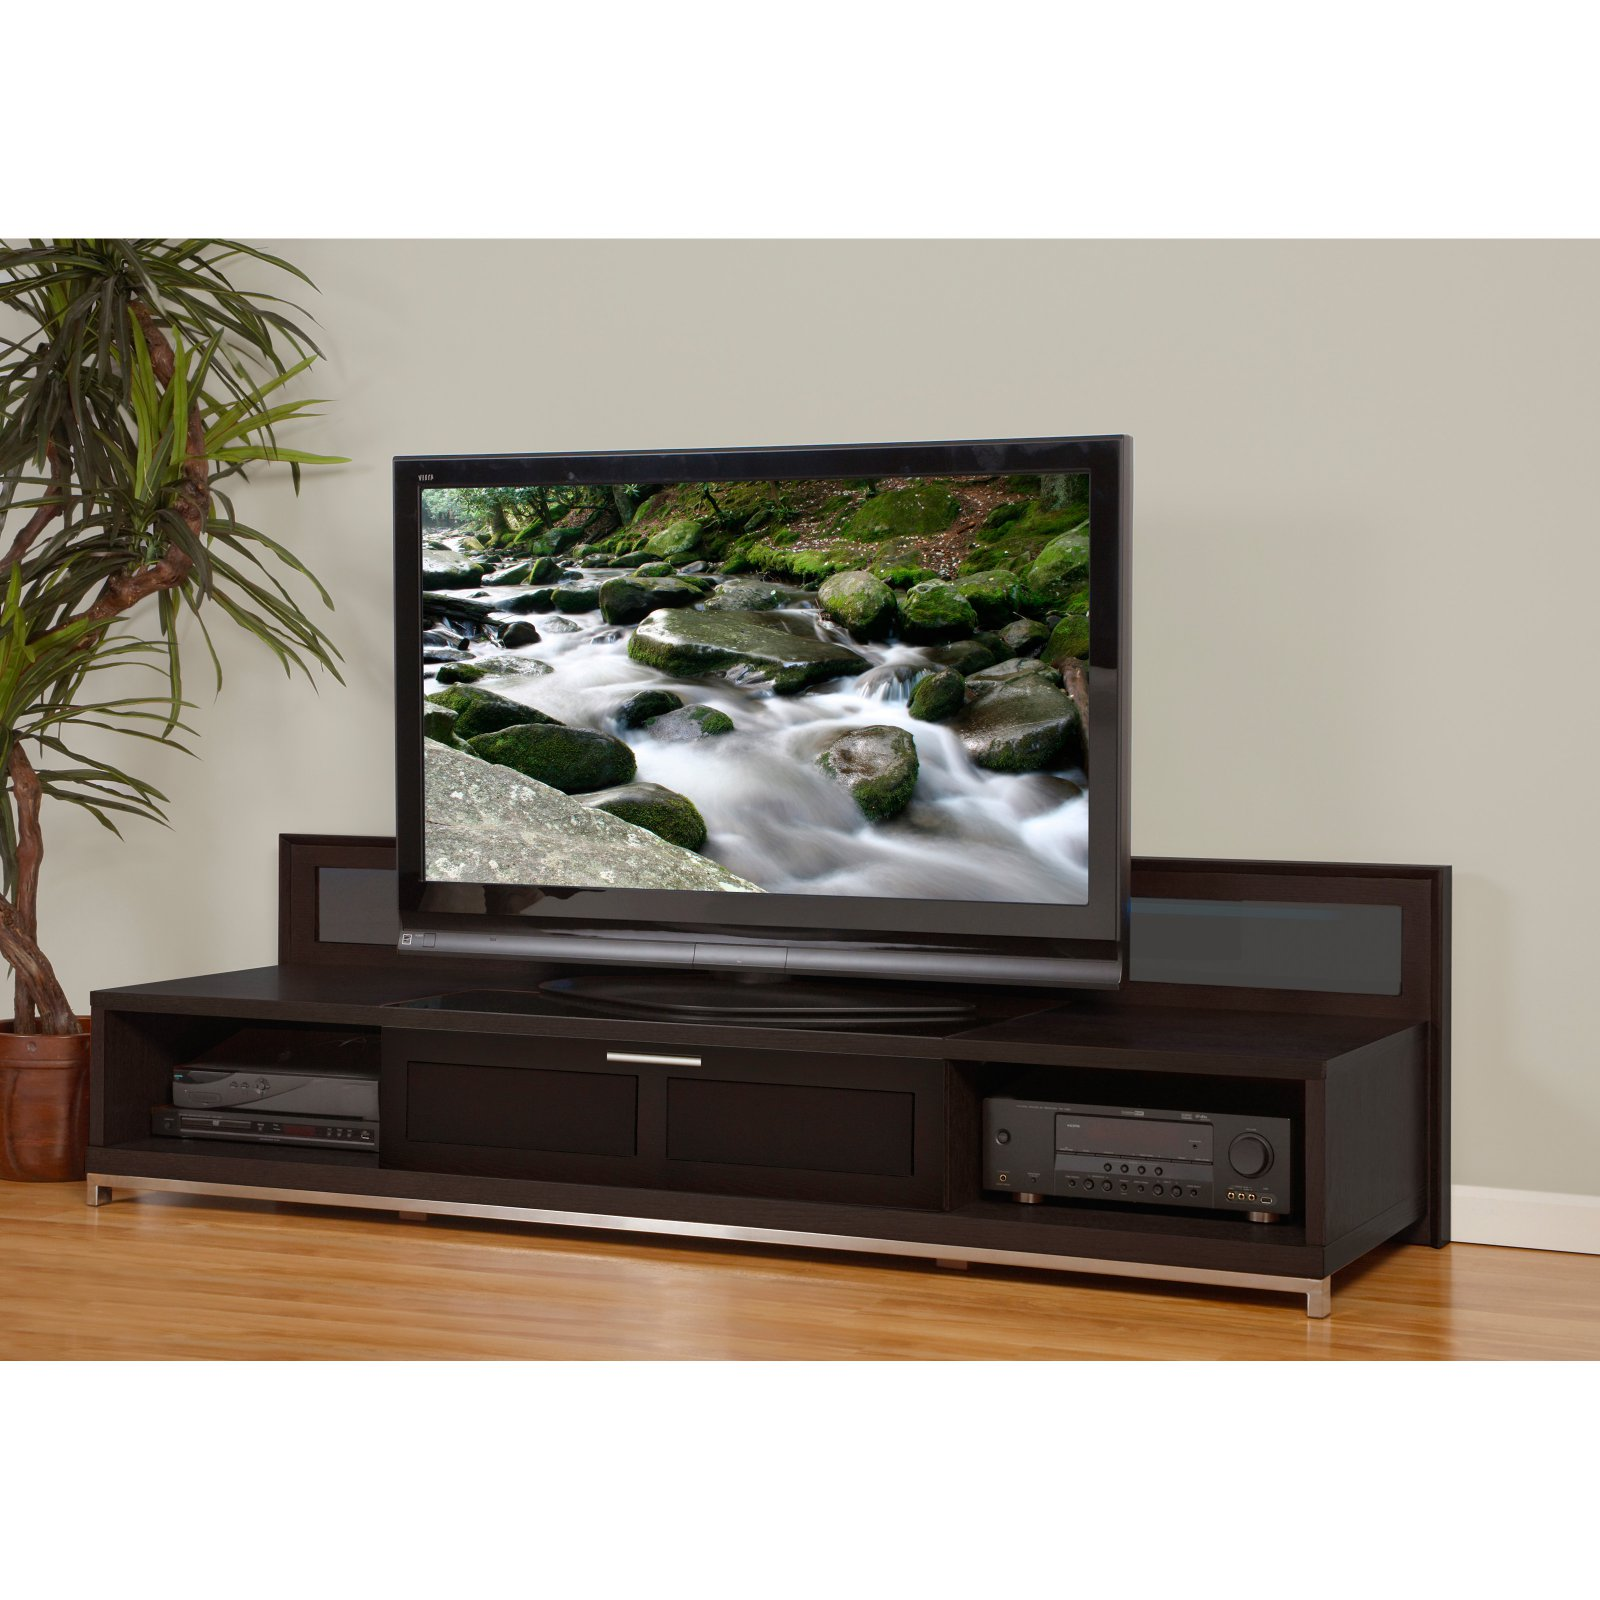 79 Inch Backlit Flat Screen TV Stand